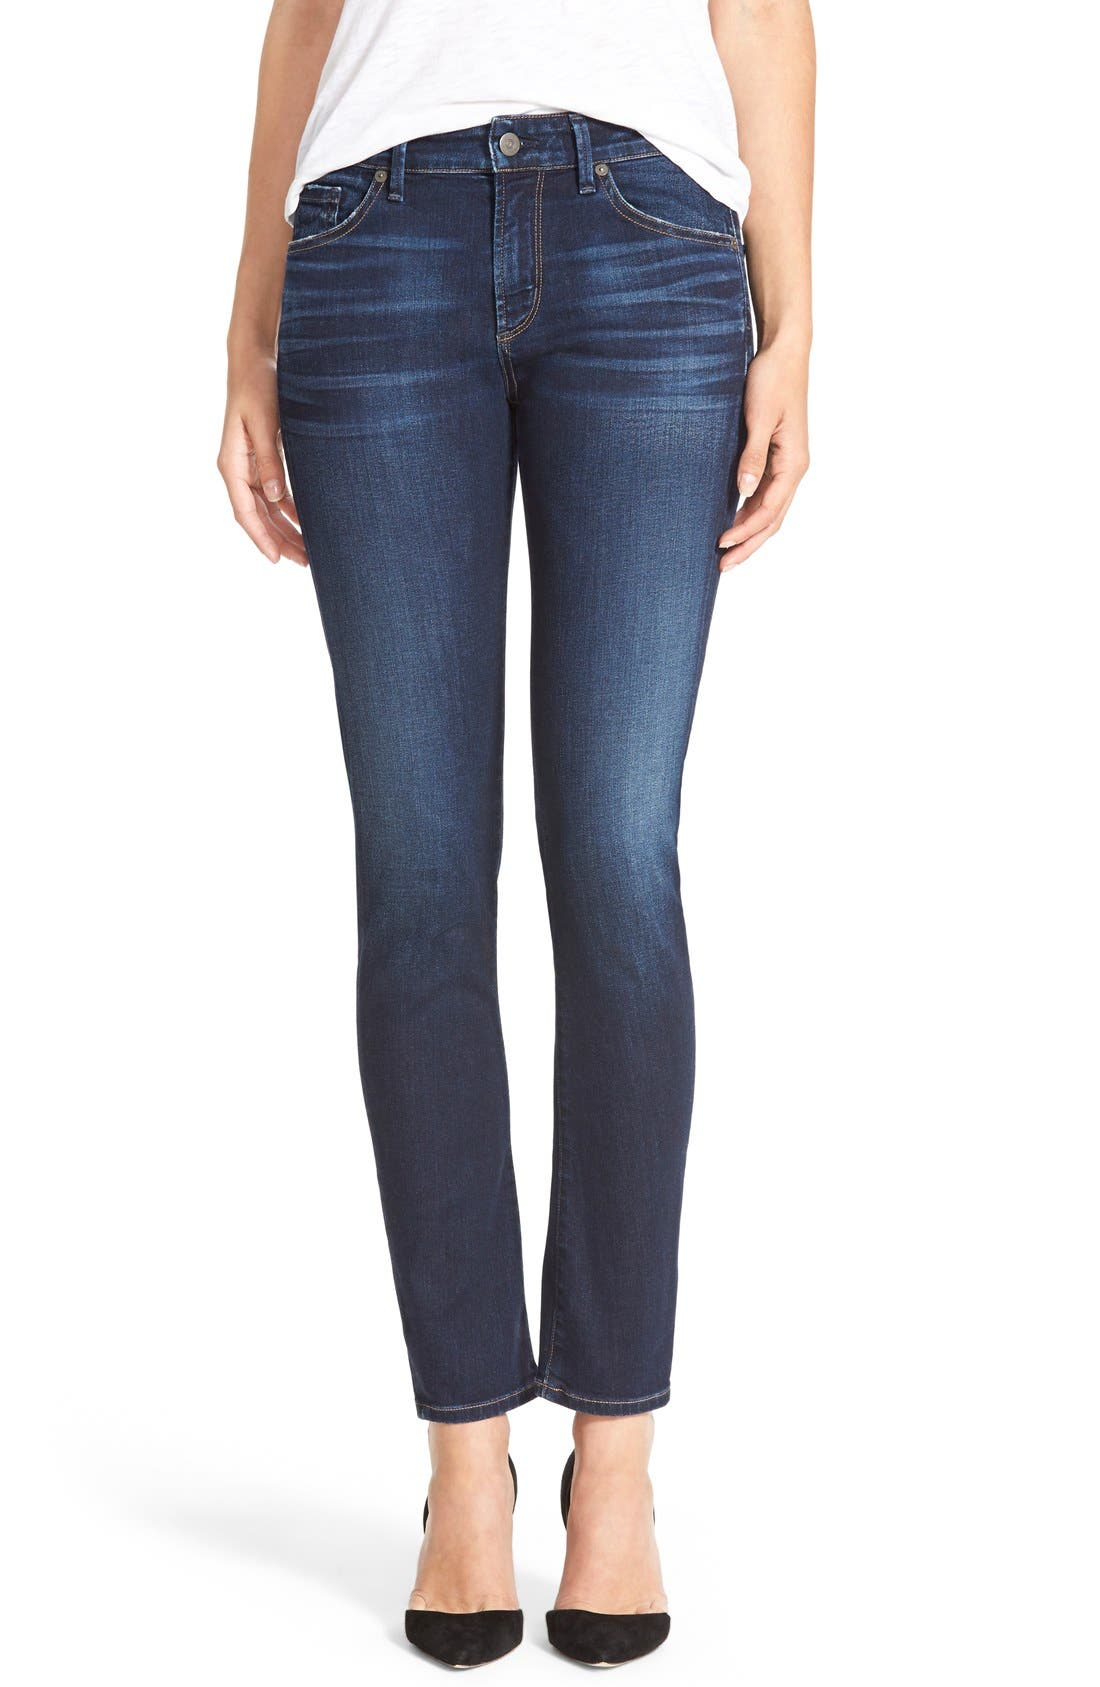 Alternate Image 1 Selected - Citizens of Humanity 'Arielle' Mid Rise Slim Jeans (Starlite)